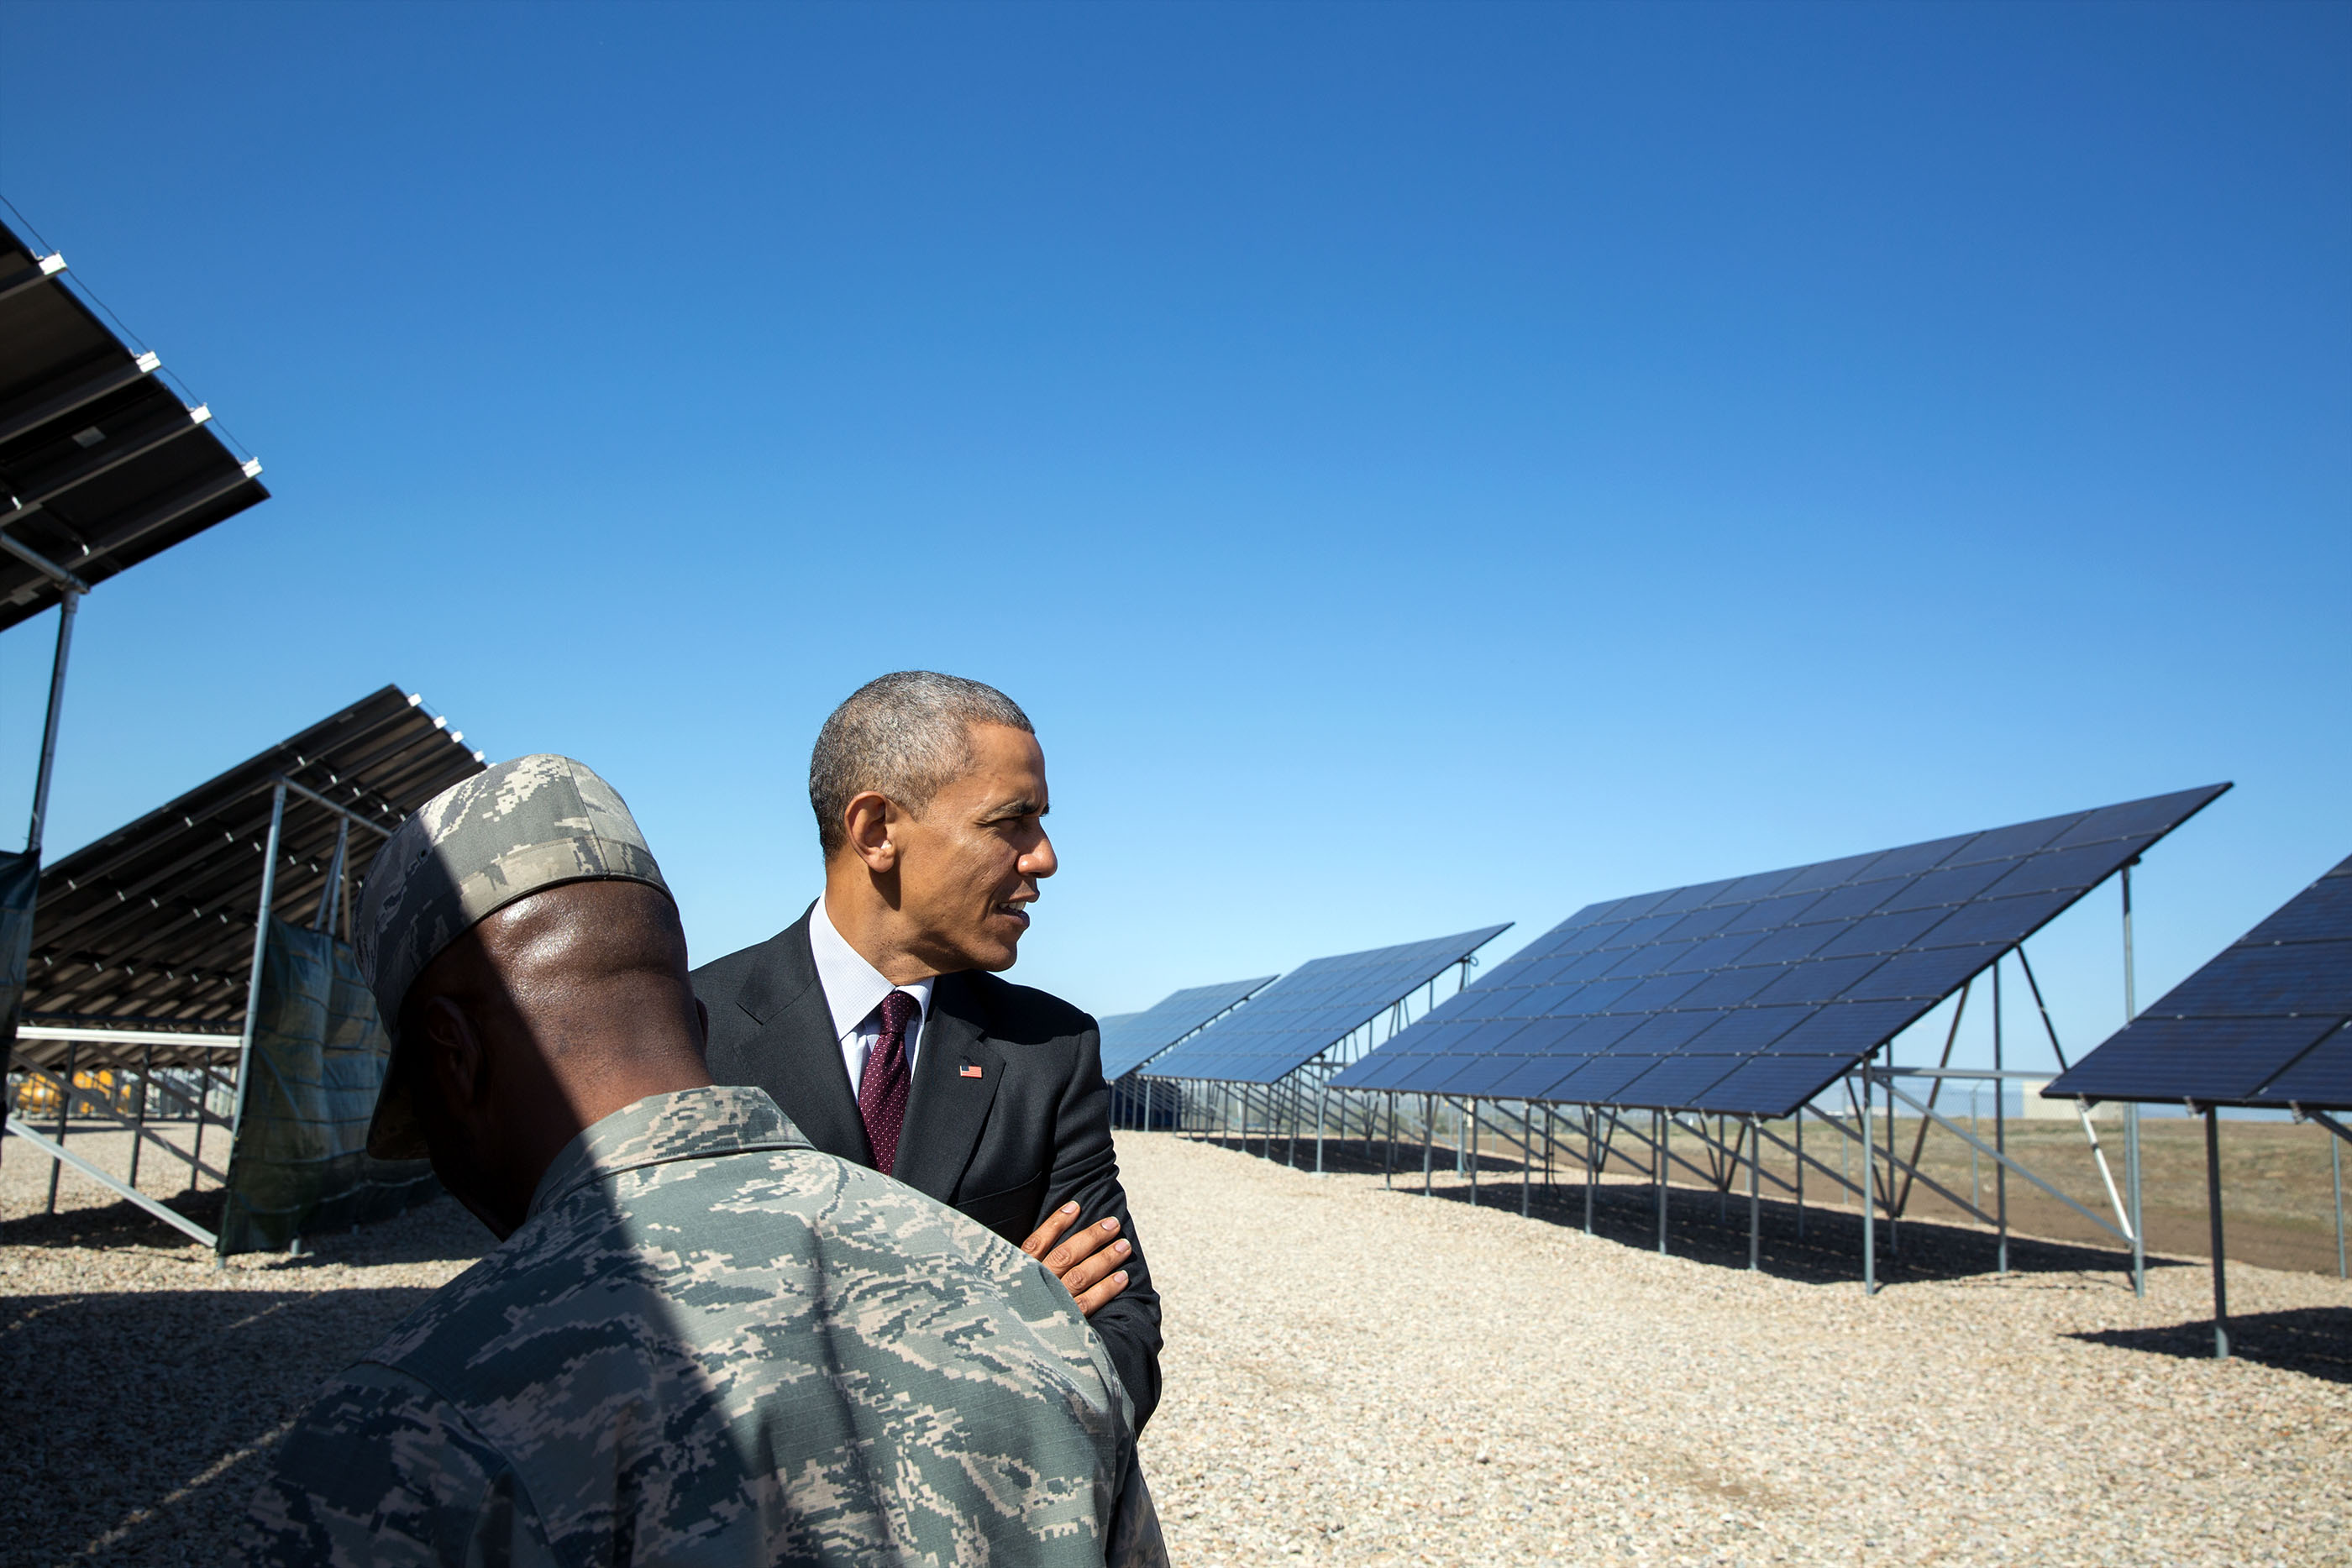 Utah, April 3, 2015. Viewing solar panels at Hill Air Force Base. (Official White House Photo by Pete Souza)